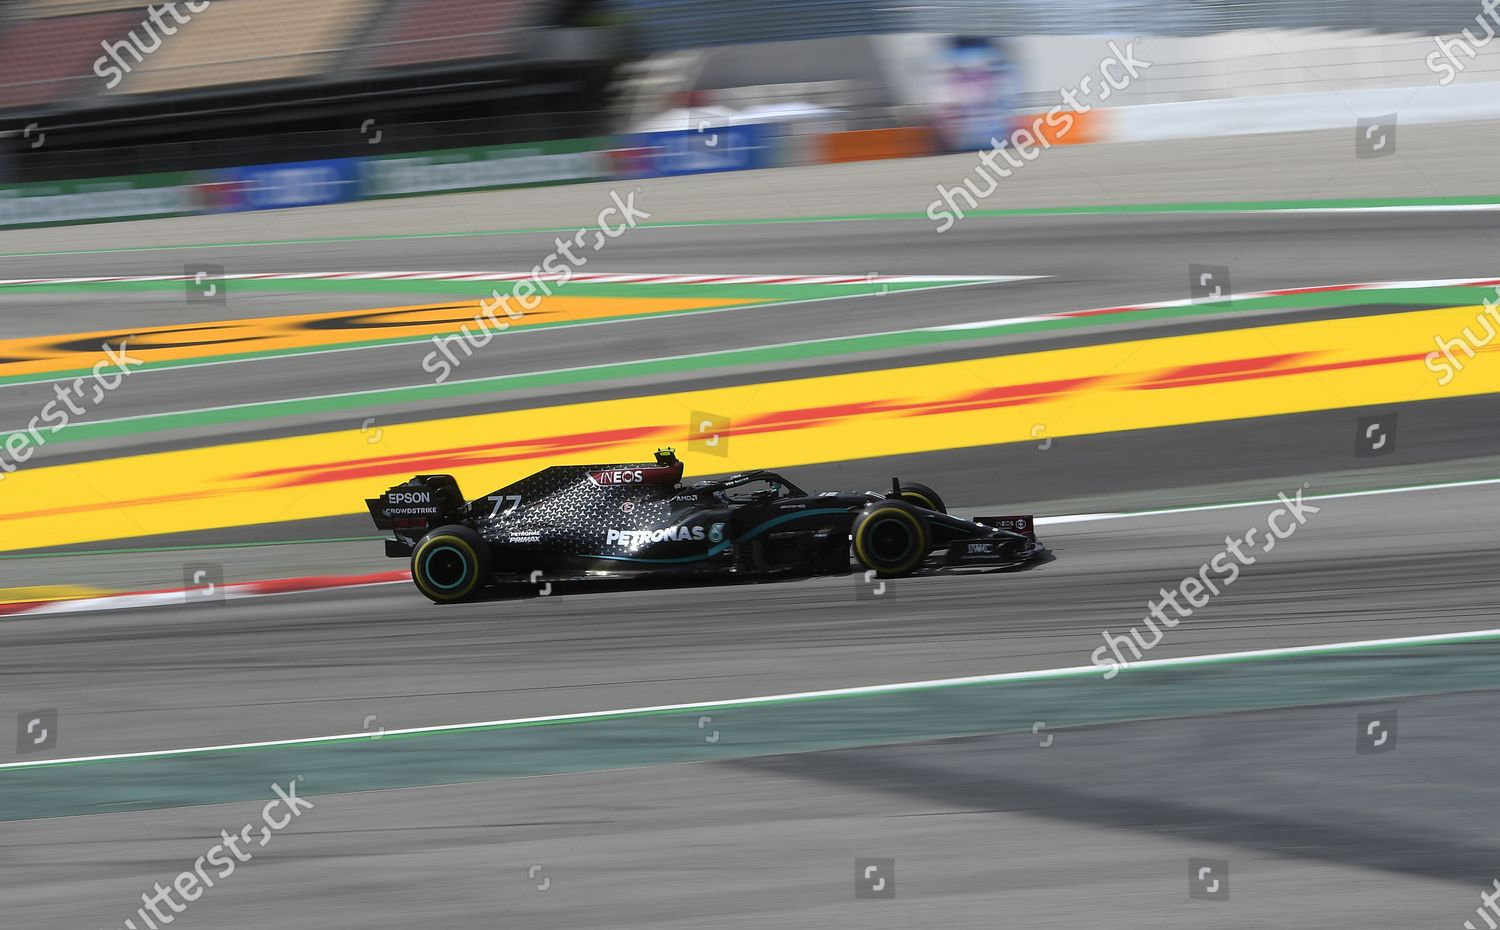 F1 2020 My Driver Career - Sivu 3 F1-gp-auto-racing-barcelona-spain-shutterstock-editorial-10746127bk